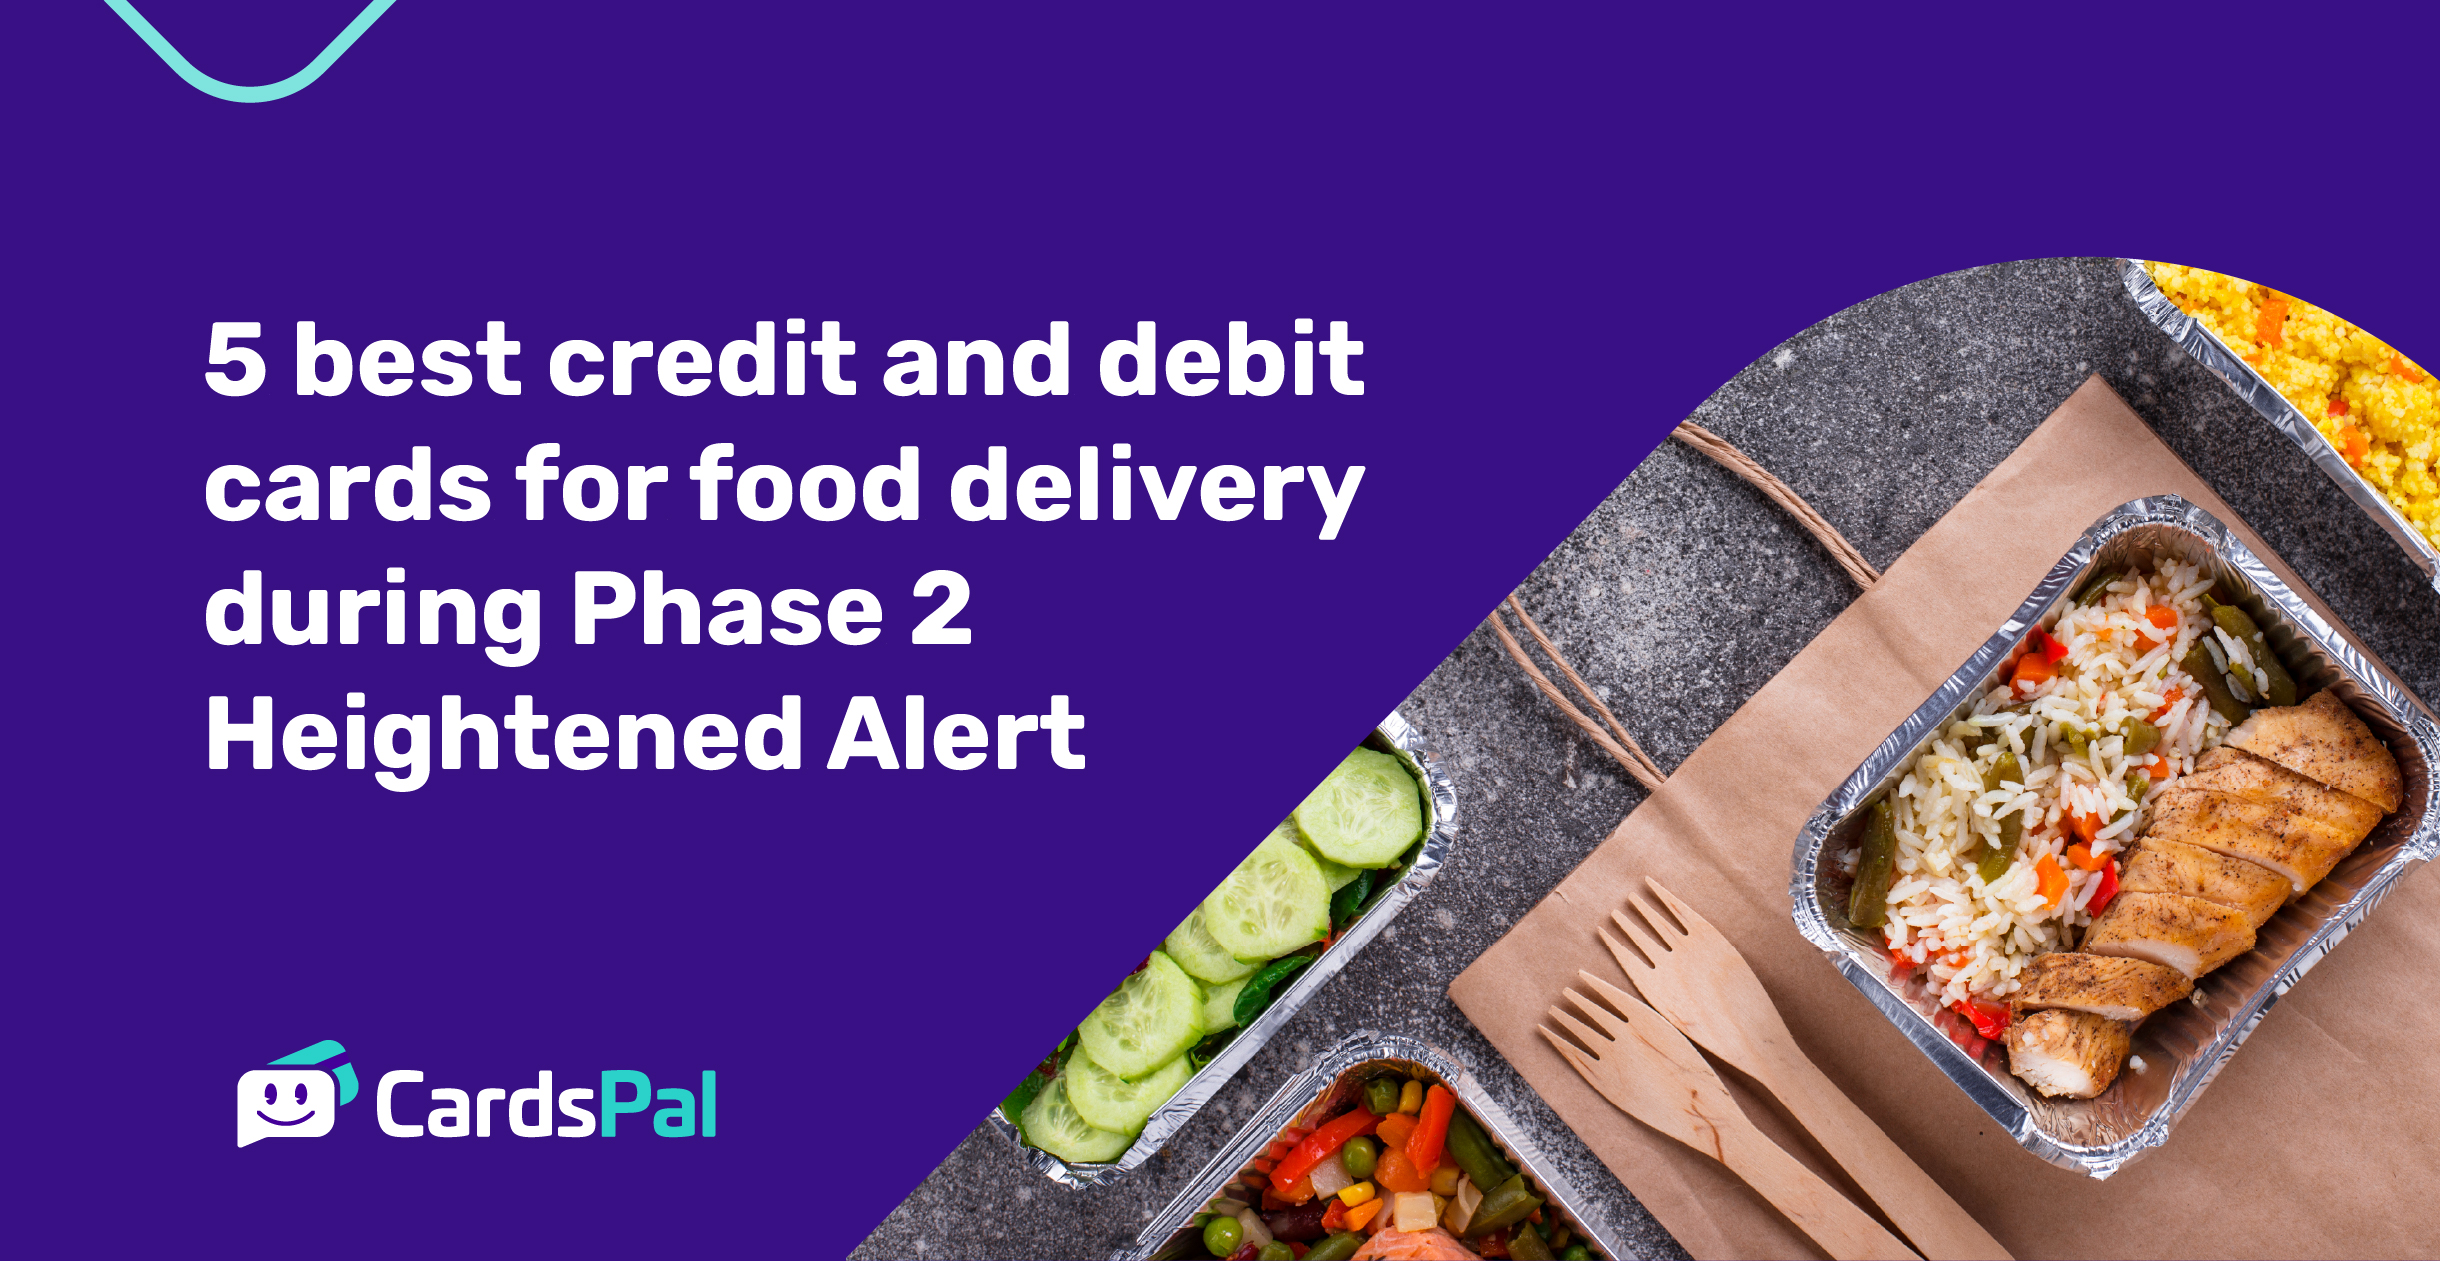 5 best credit and debit cards for food delivery during Phase 2 Heightened Alert